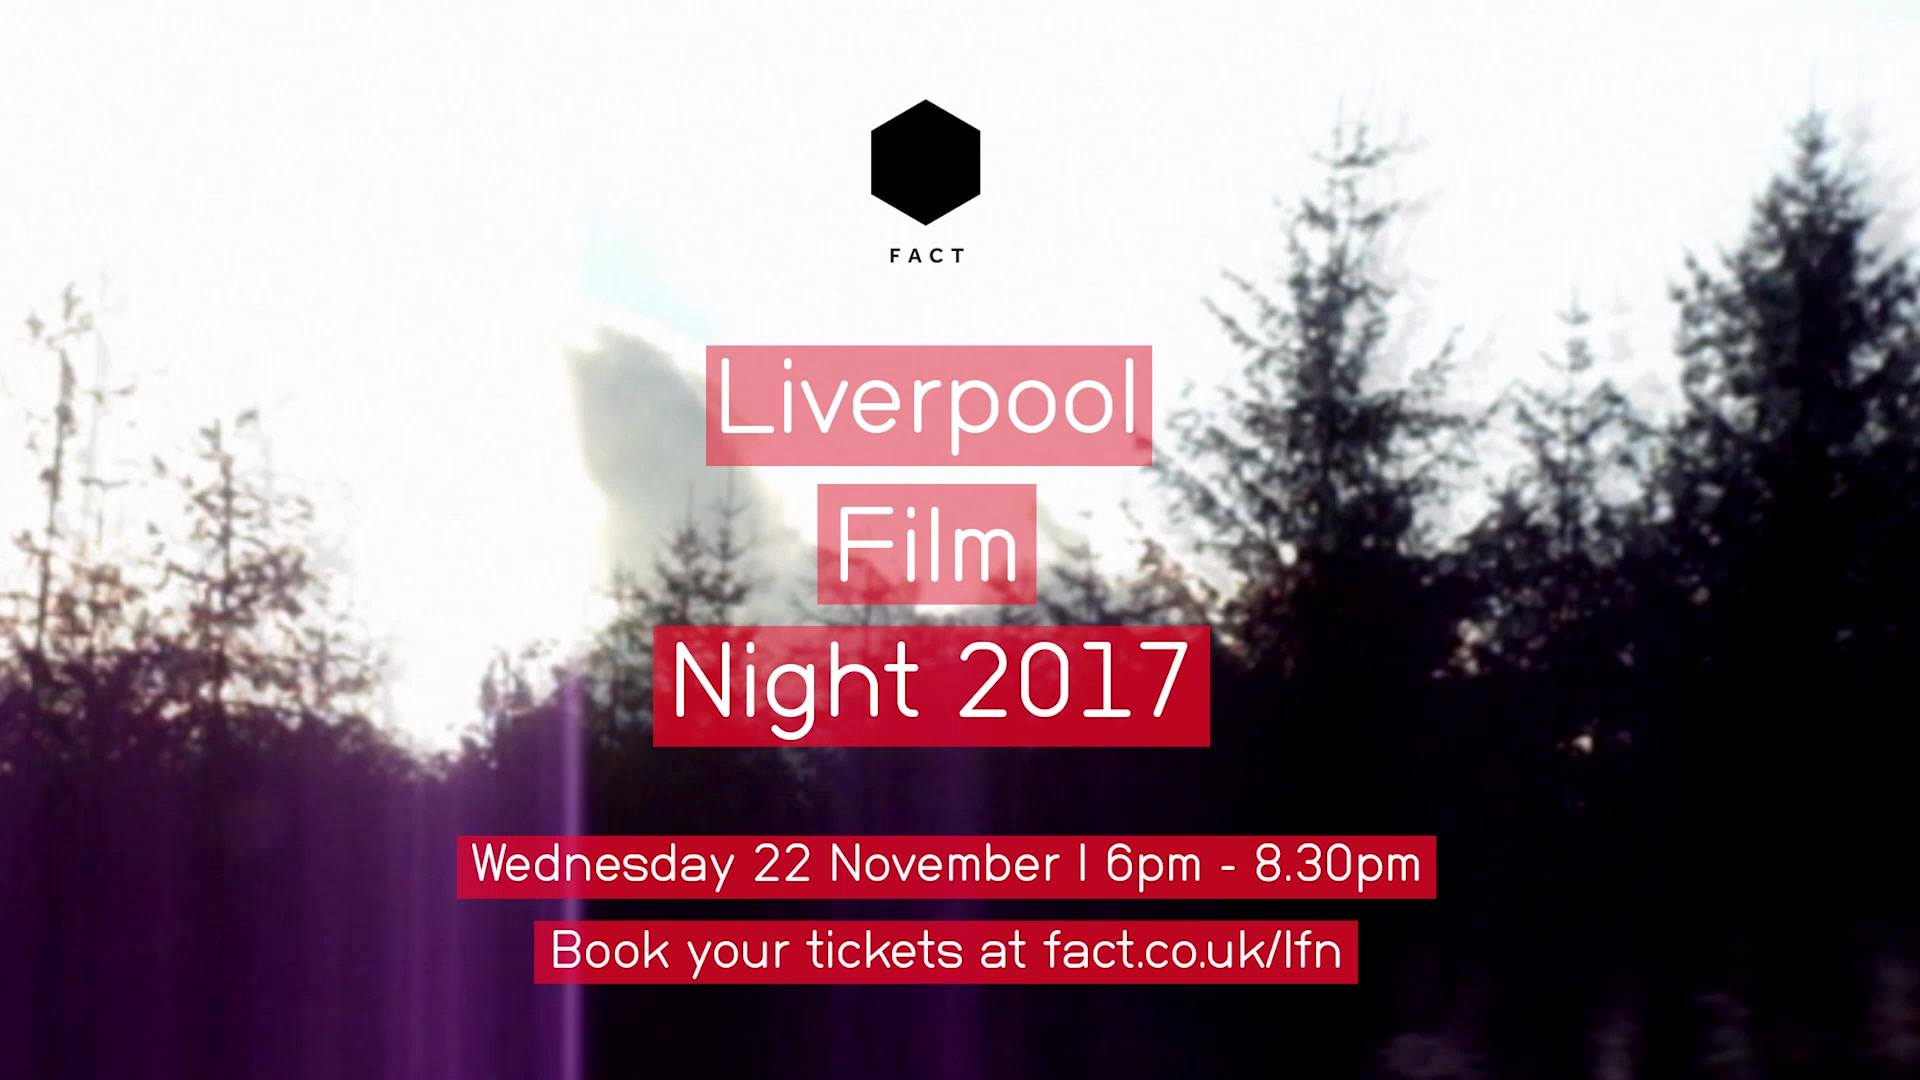 Trailer for Liverpool Film Night 2017